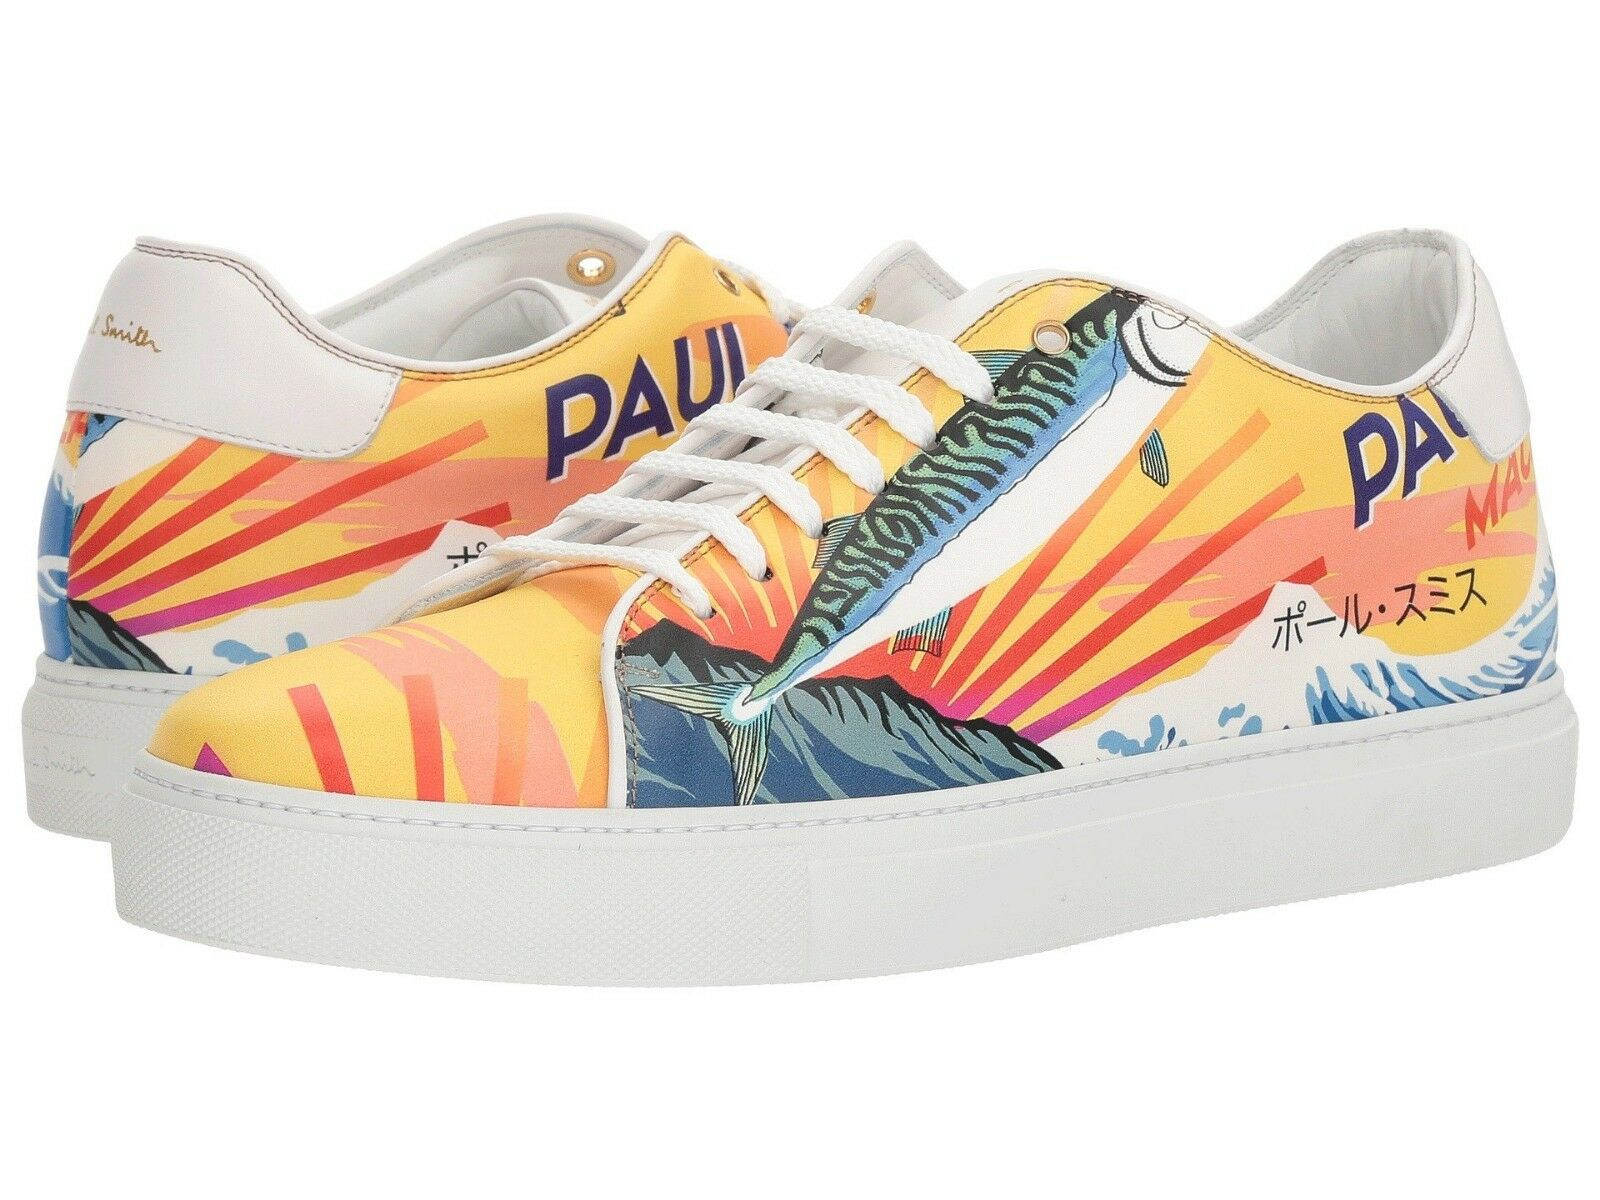 NIB  450 Paul Smith Smith Smith  Basso  Mackerel-print leather scarpe da ginnastica. Made in . 017eed